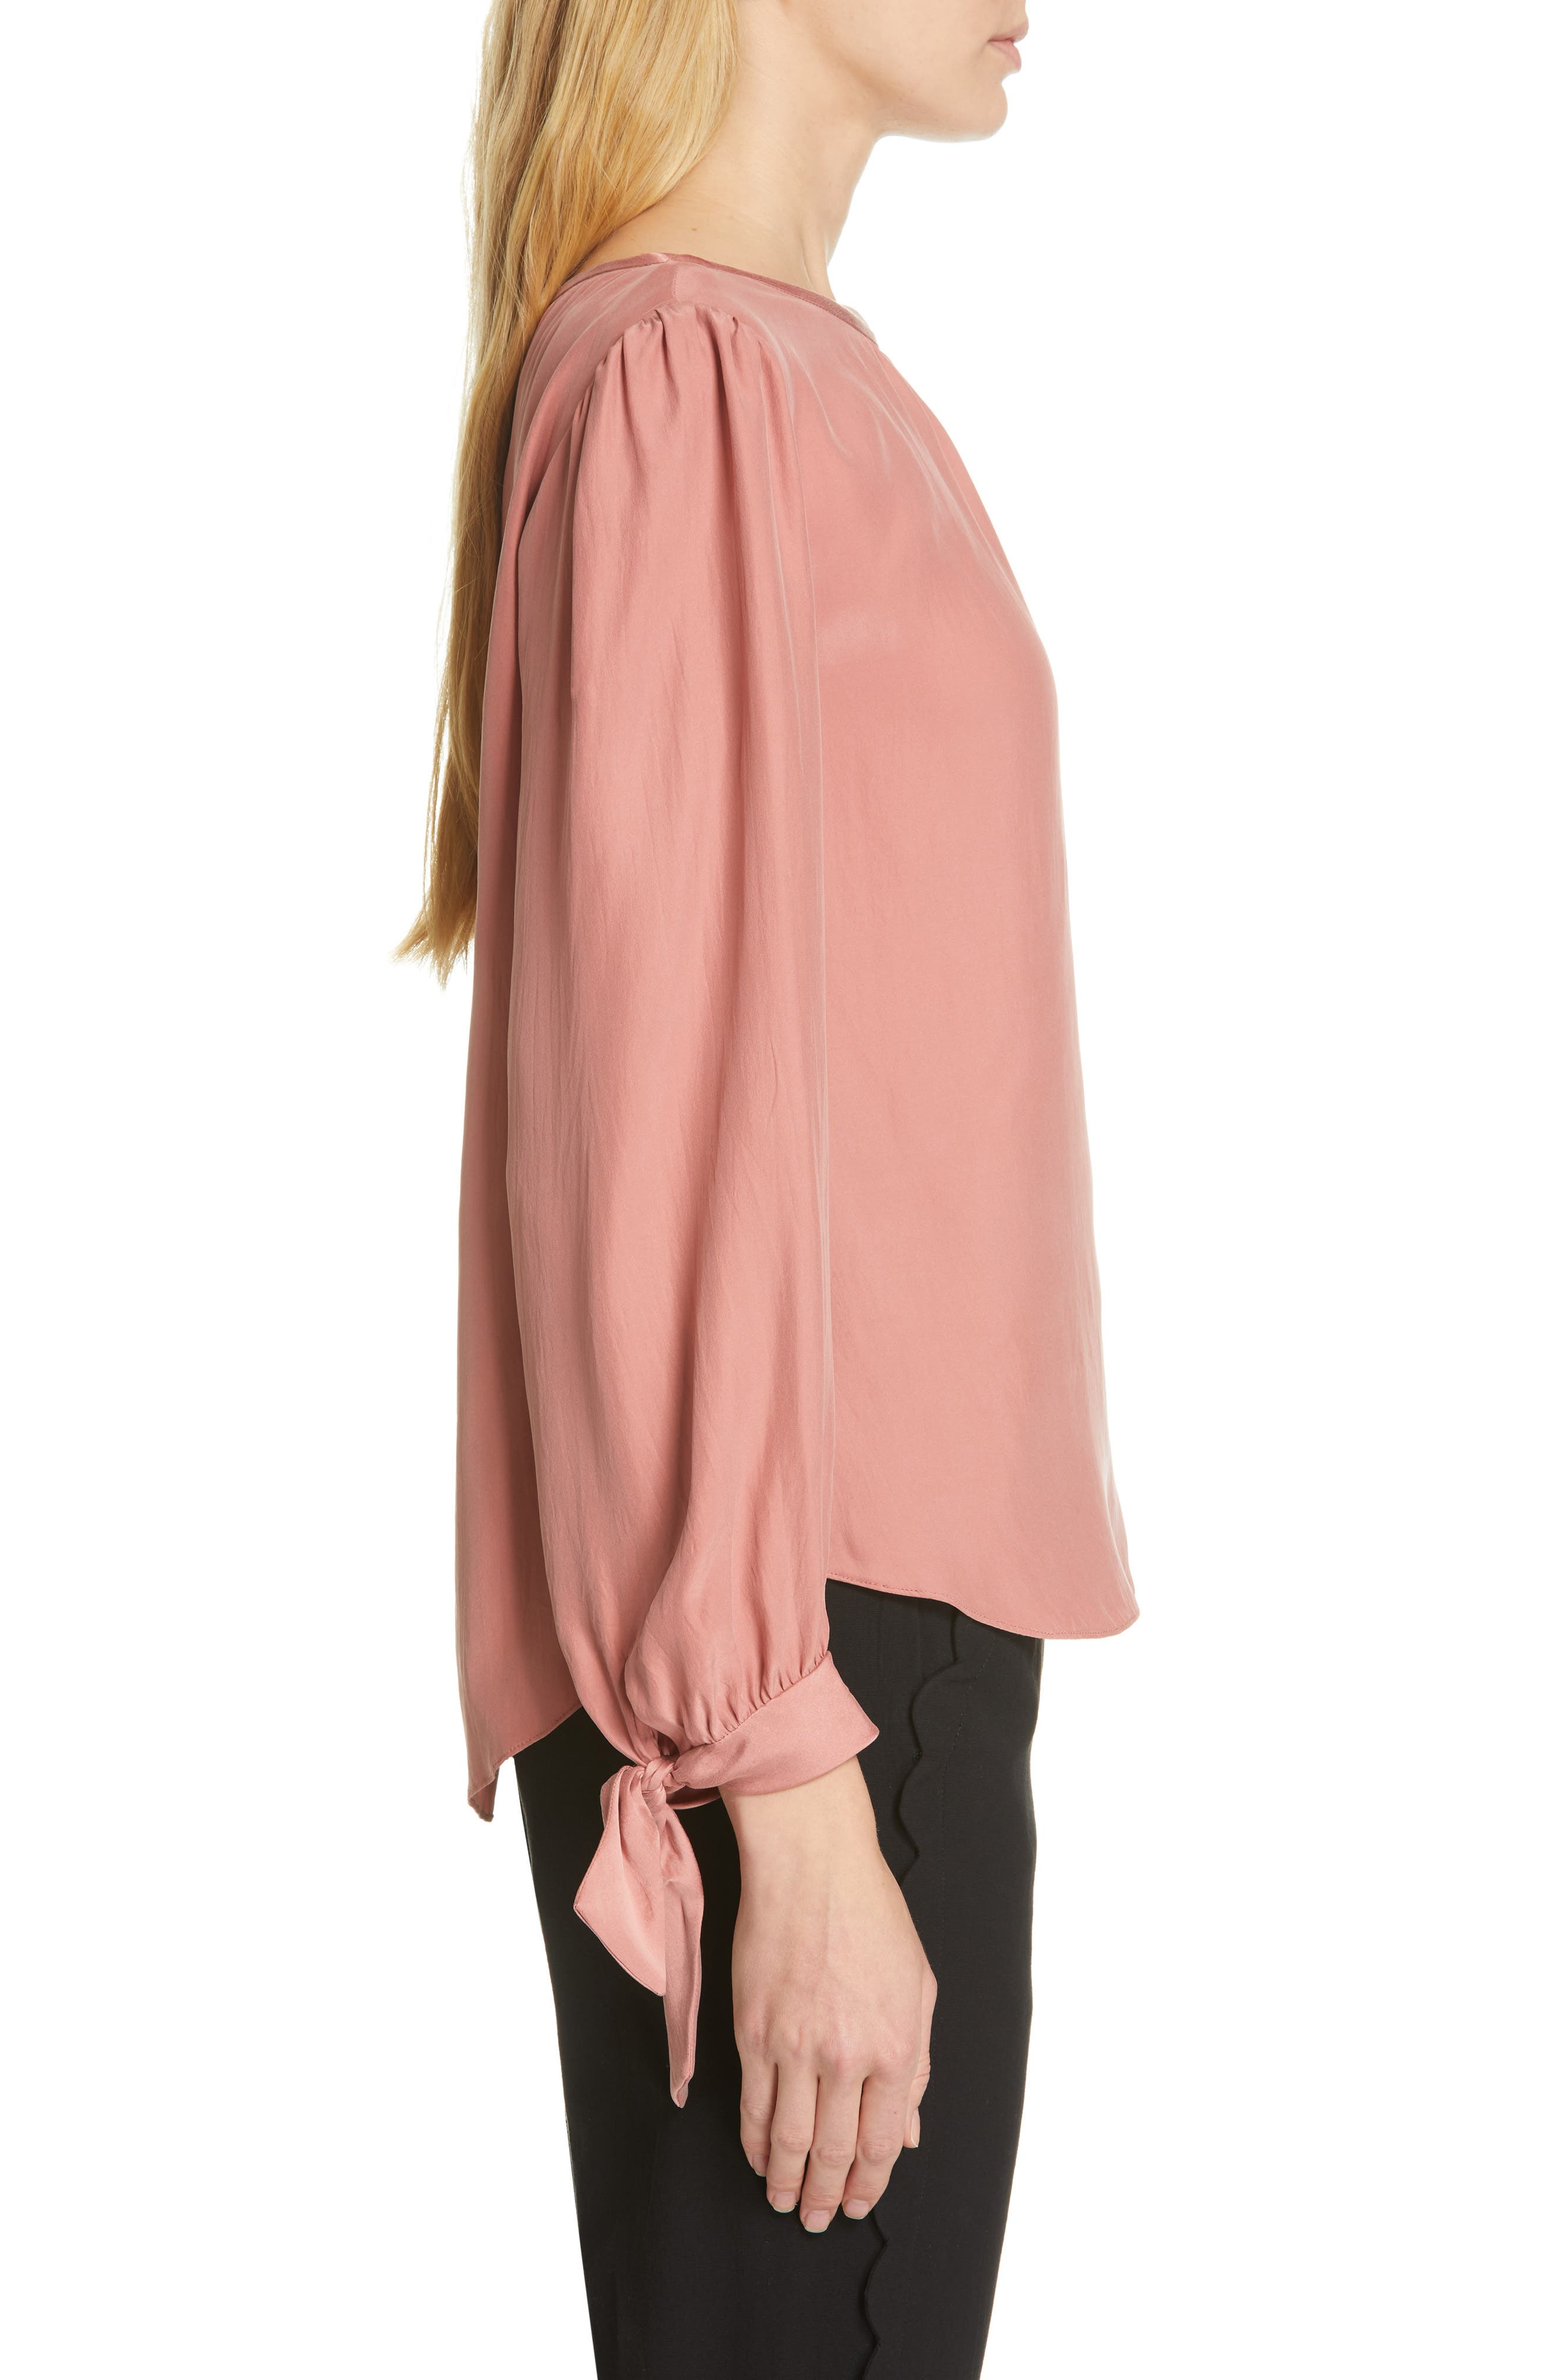 TAILORED BY REBECCA TAYLOR,                             Sleeve Tie Silk Charmeuse Top,                             Alternate thumbnail 3, color,                             LIPGLOSS